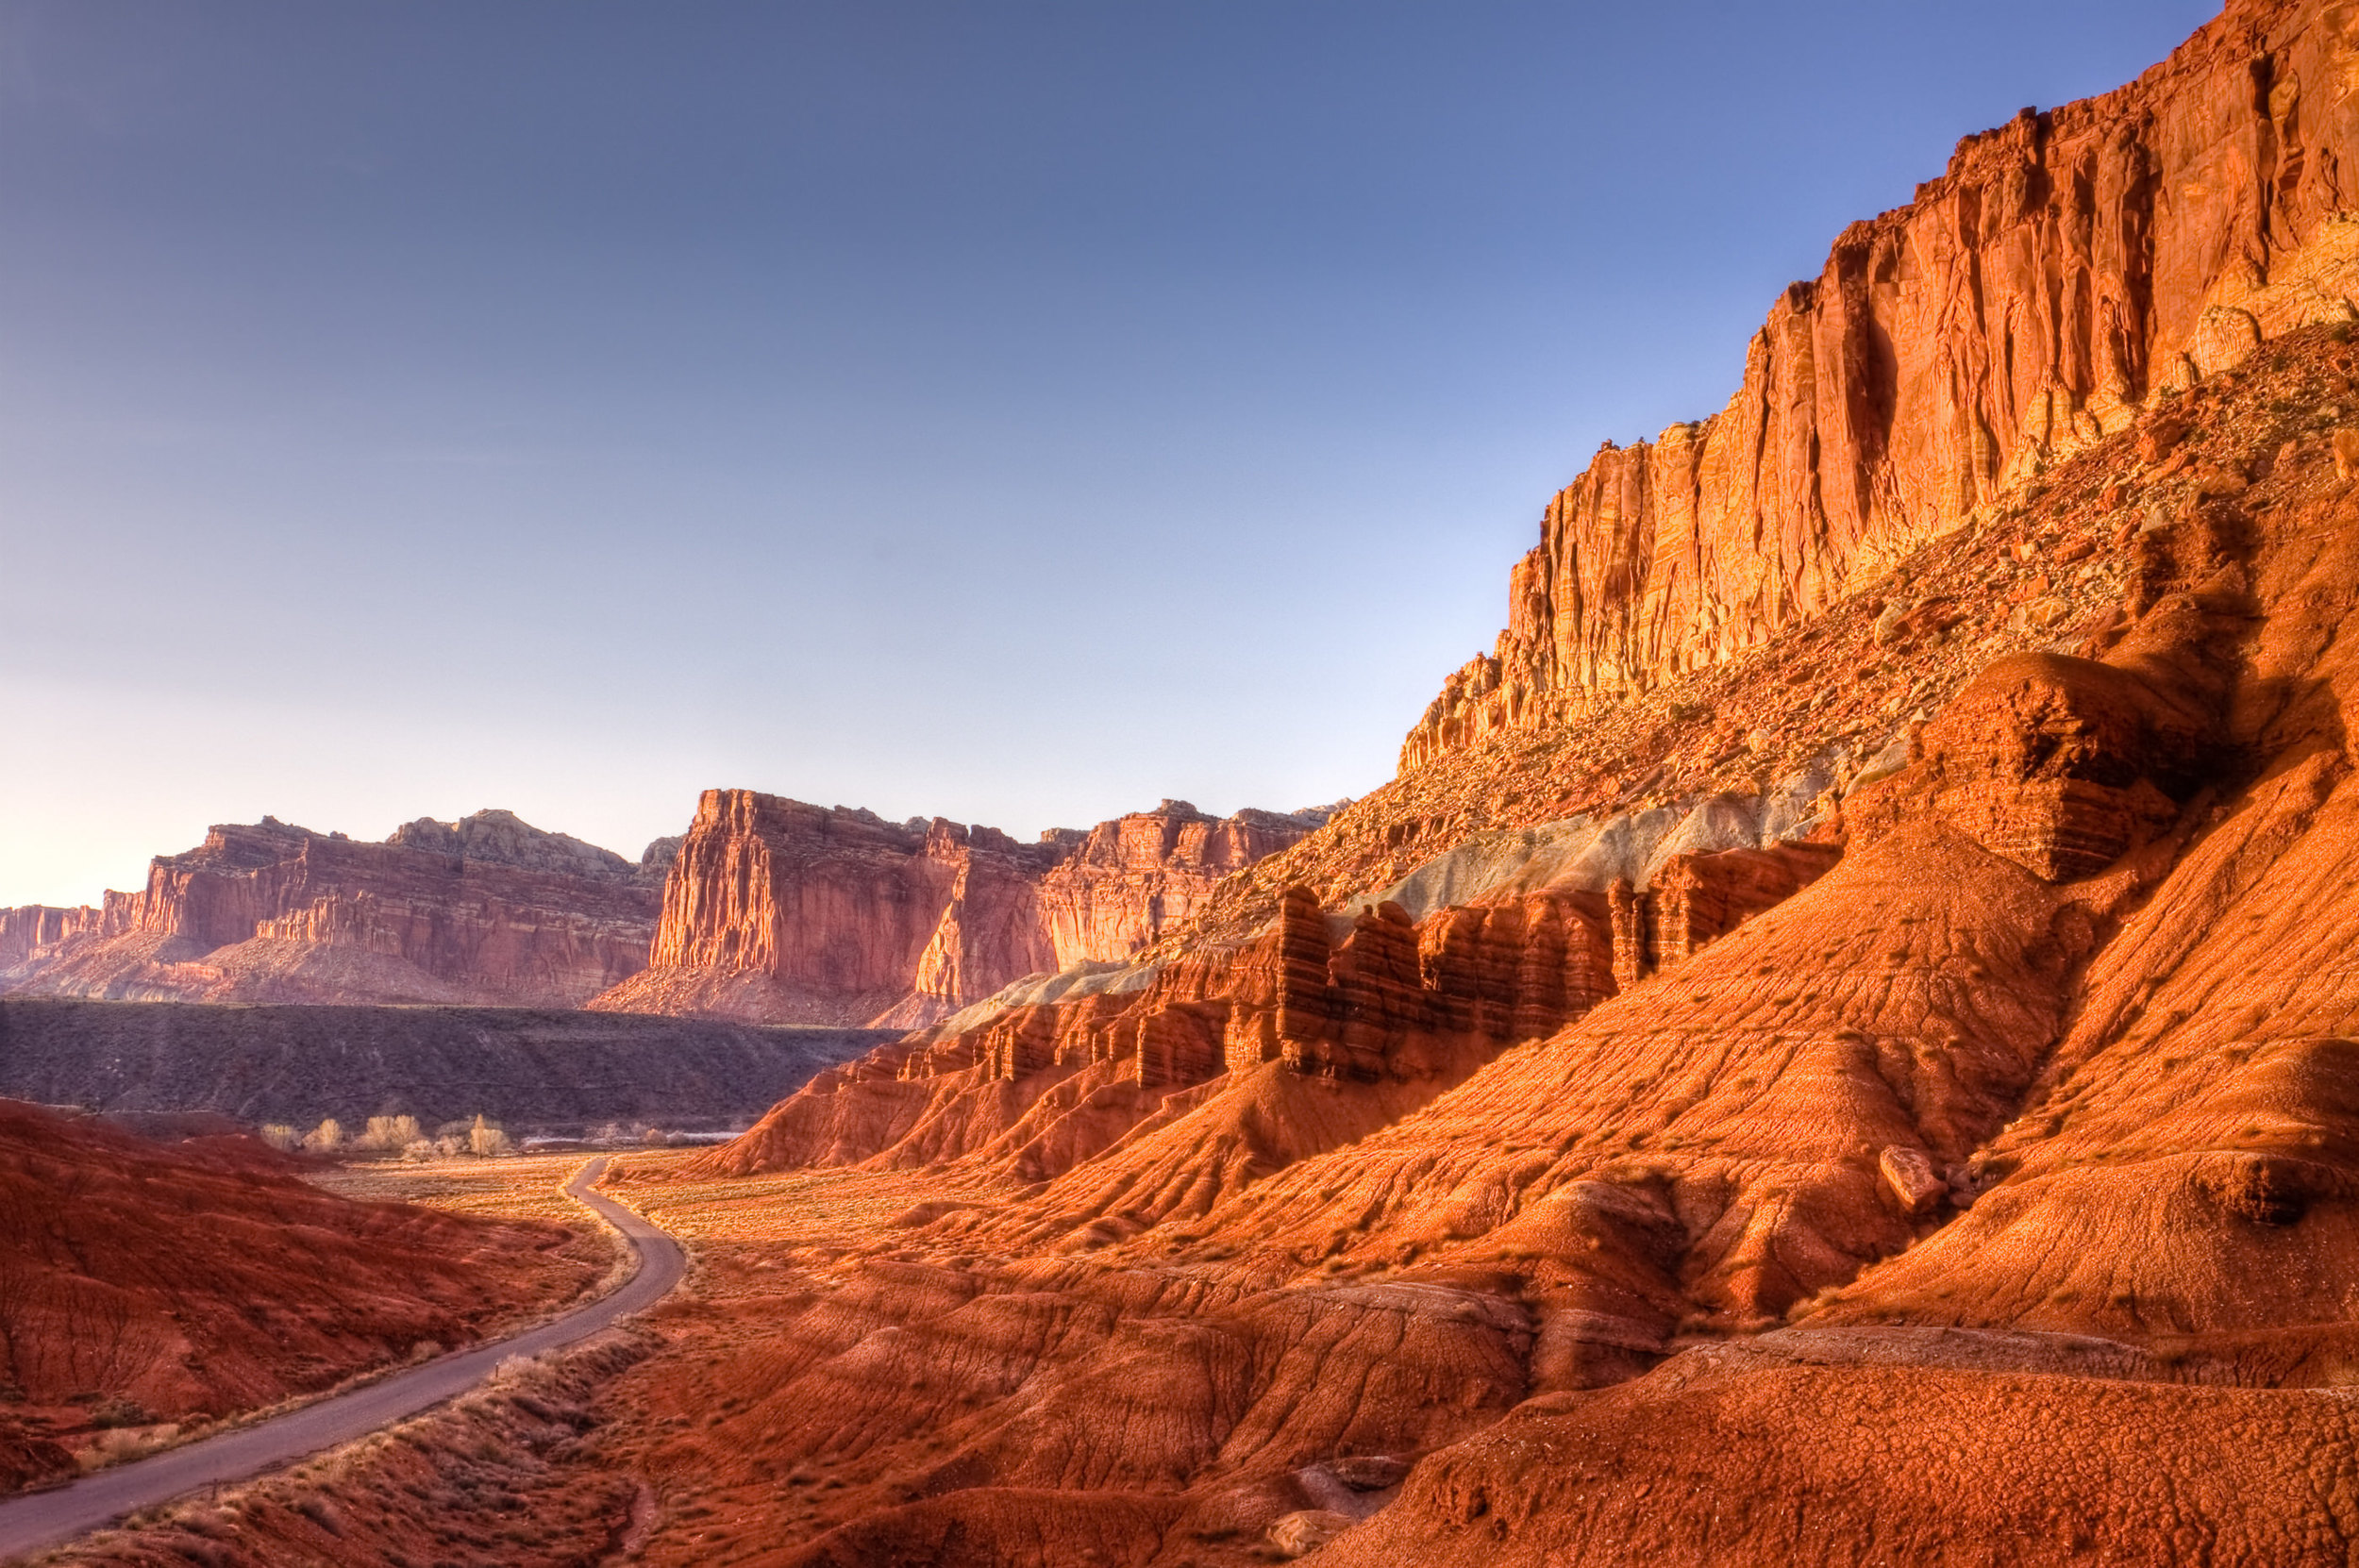 ROAD TO FRUITA - CAPITOL REEF NATIONAL PARK –(PHOTO: RICK WHITACRE/SHUTTERSTOCK)